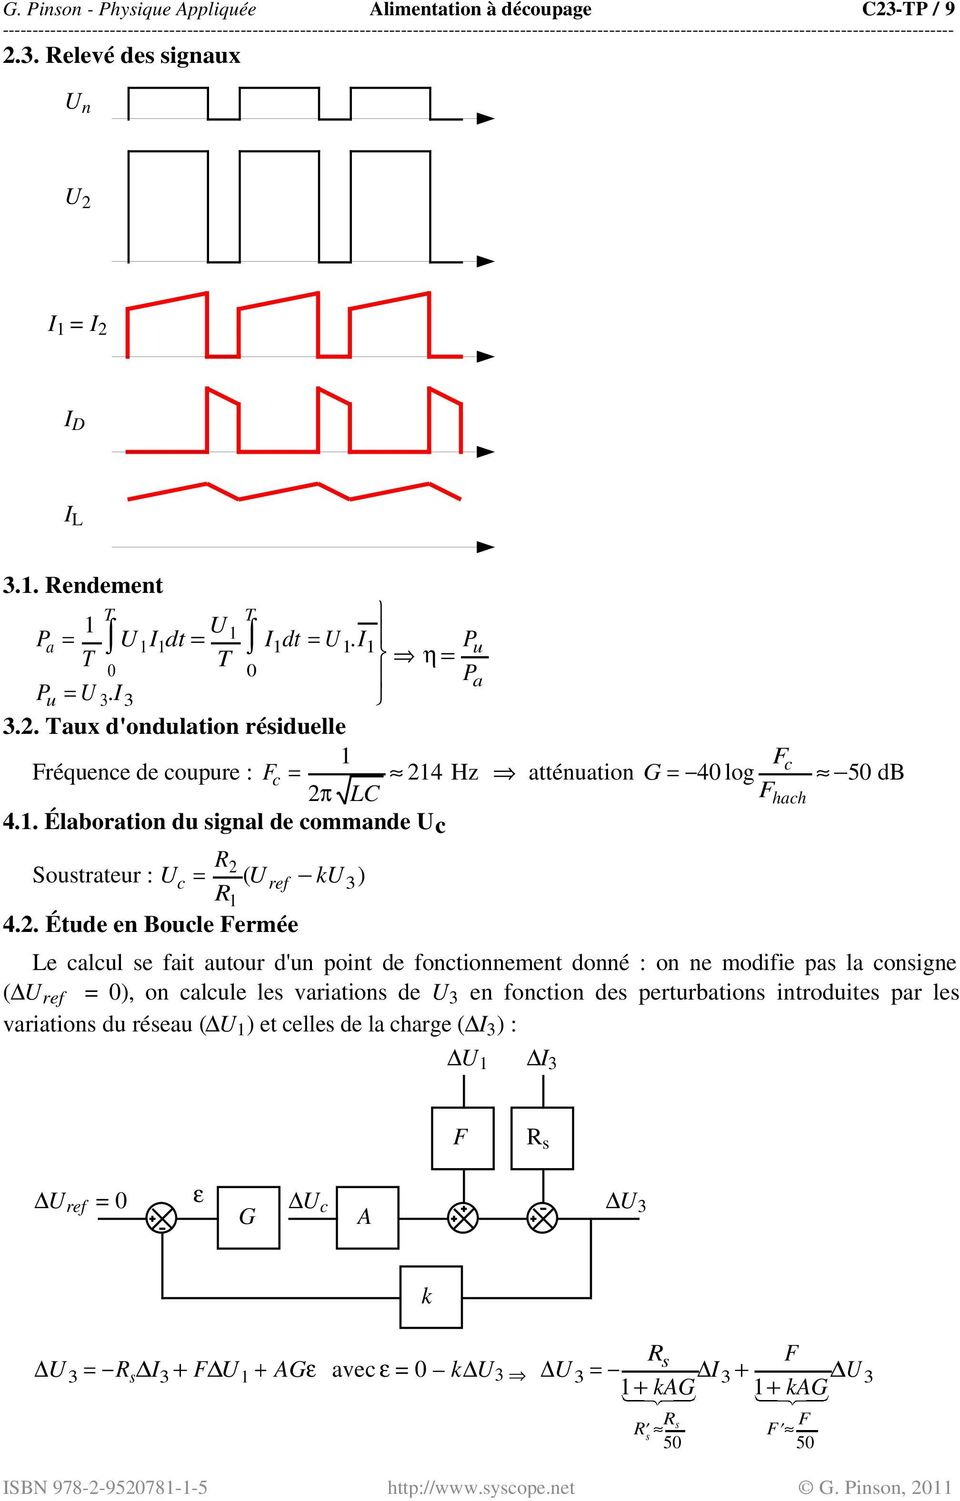 2. Étude en Boucle Fermée Le calcul se fait autour d'un point de fonctionnement donné : on ne modifie pas la consigne ( U ref = 0), on calcule les variations de U en fonction des perturbations